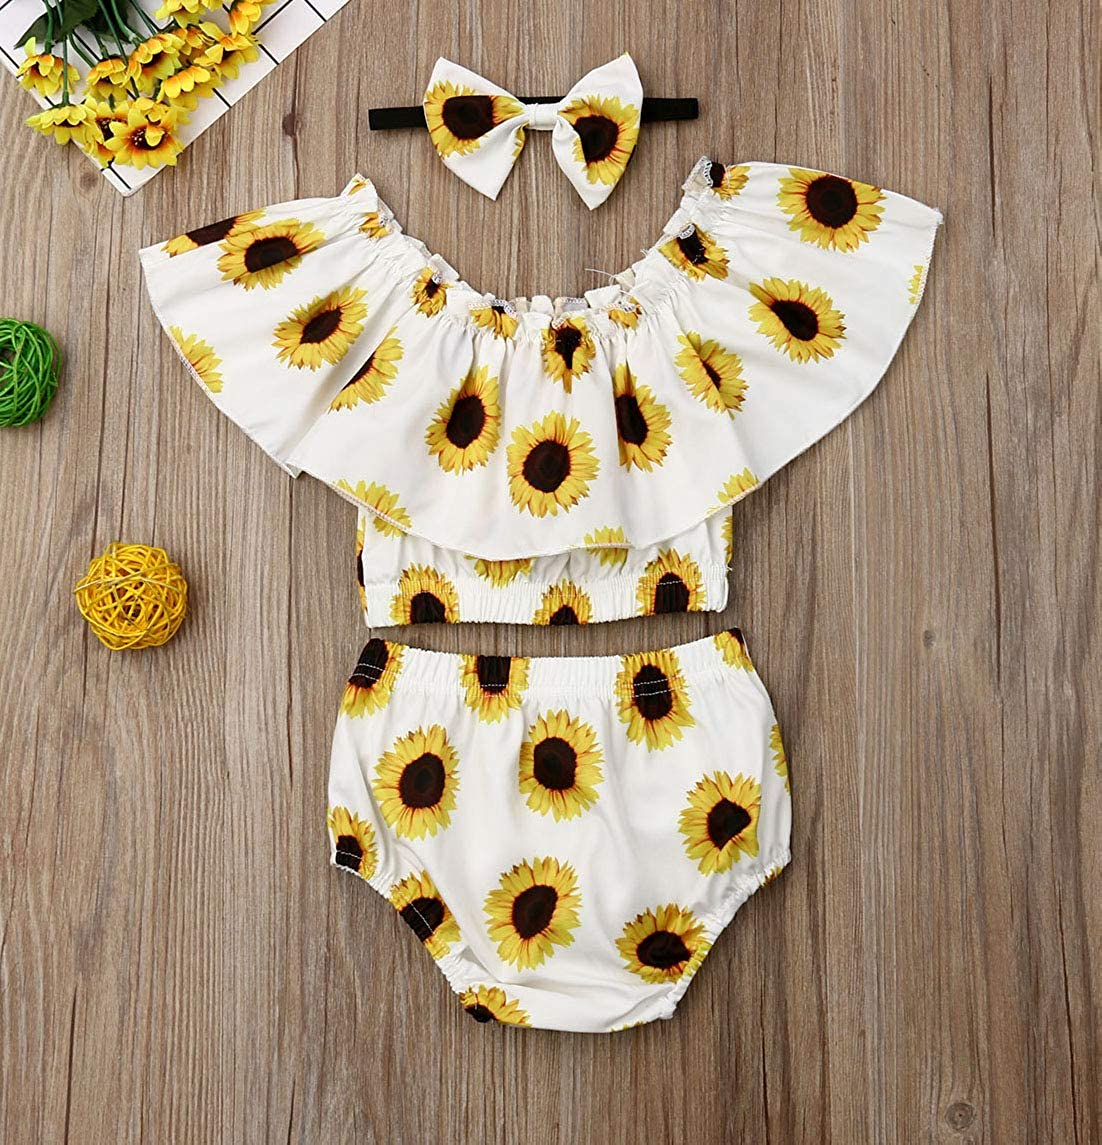 Toddler Baby Girls Sunflower Summer Clothes 3PCS Ruffle Crop Top and Matching Shorts and Headband Outfit Set